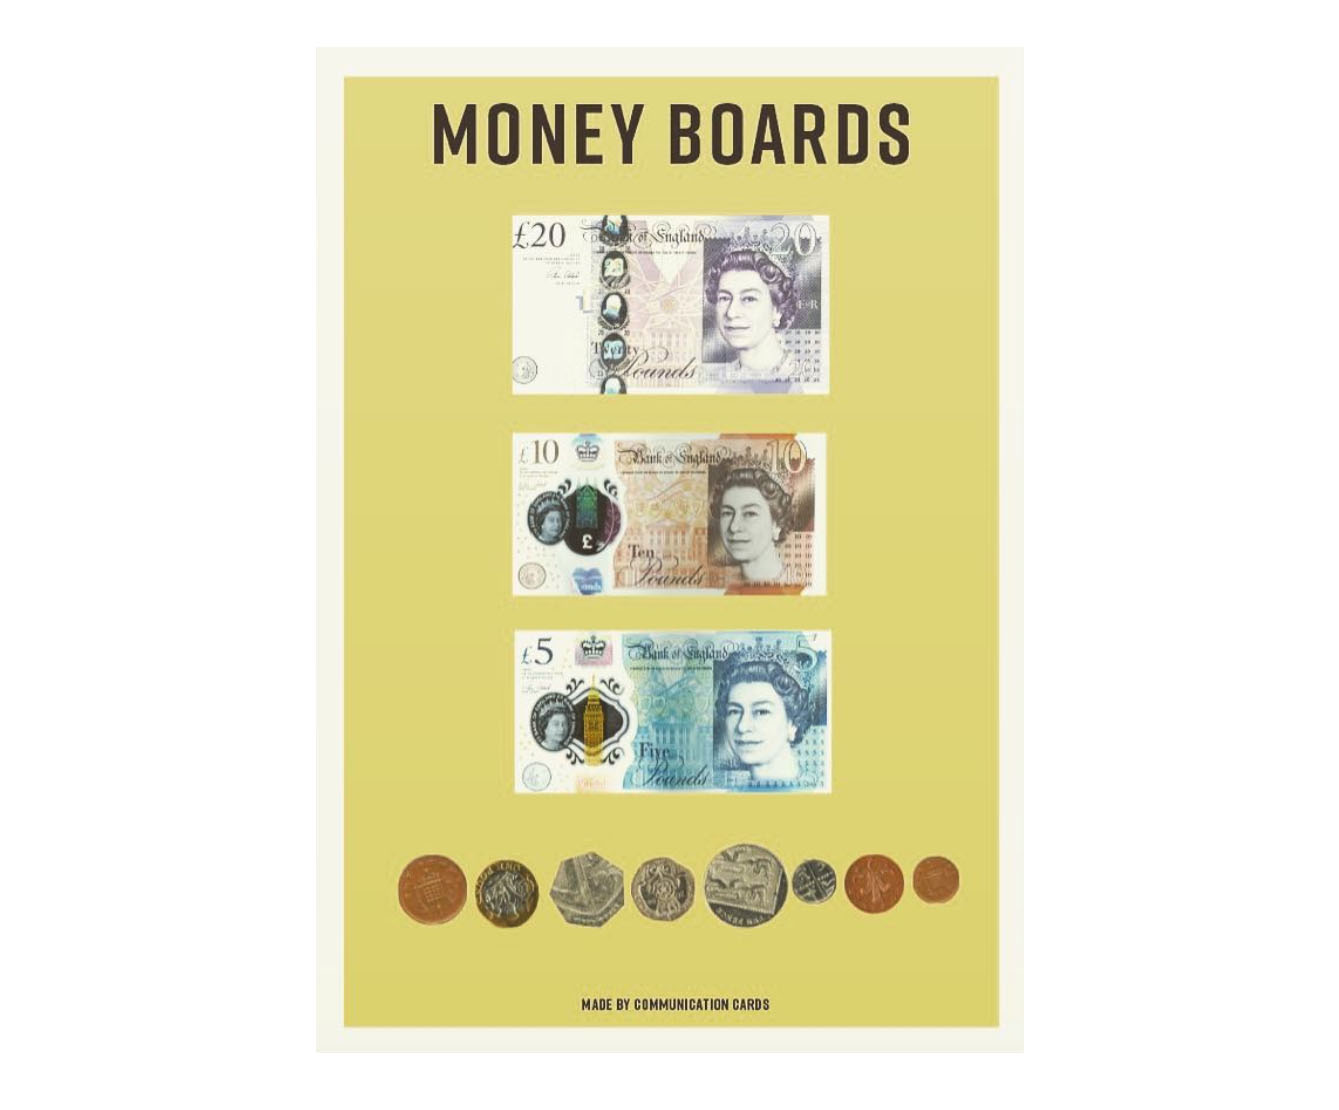 Money Boards